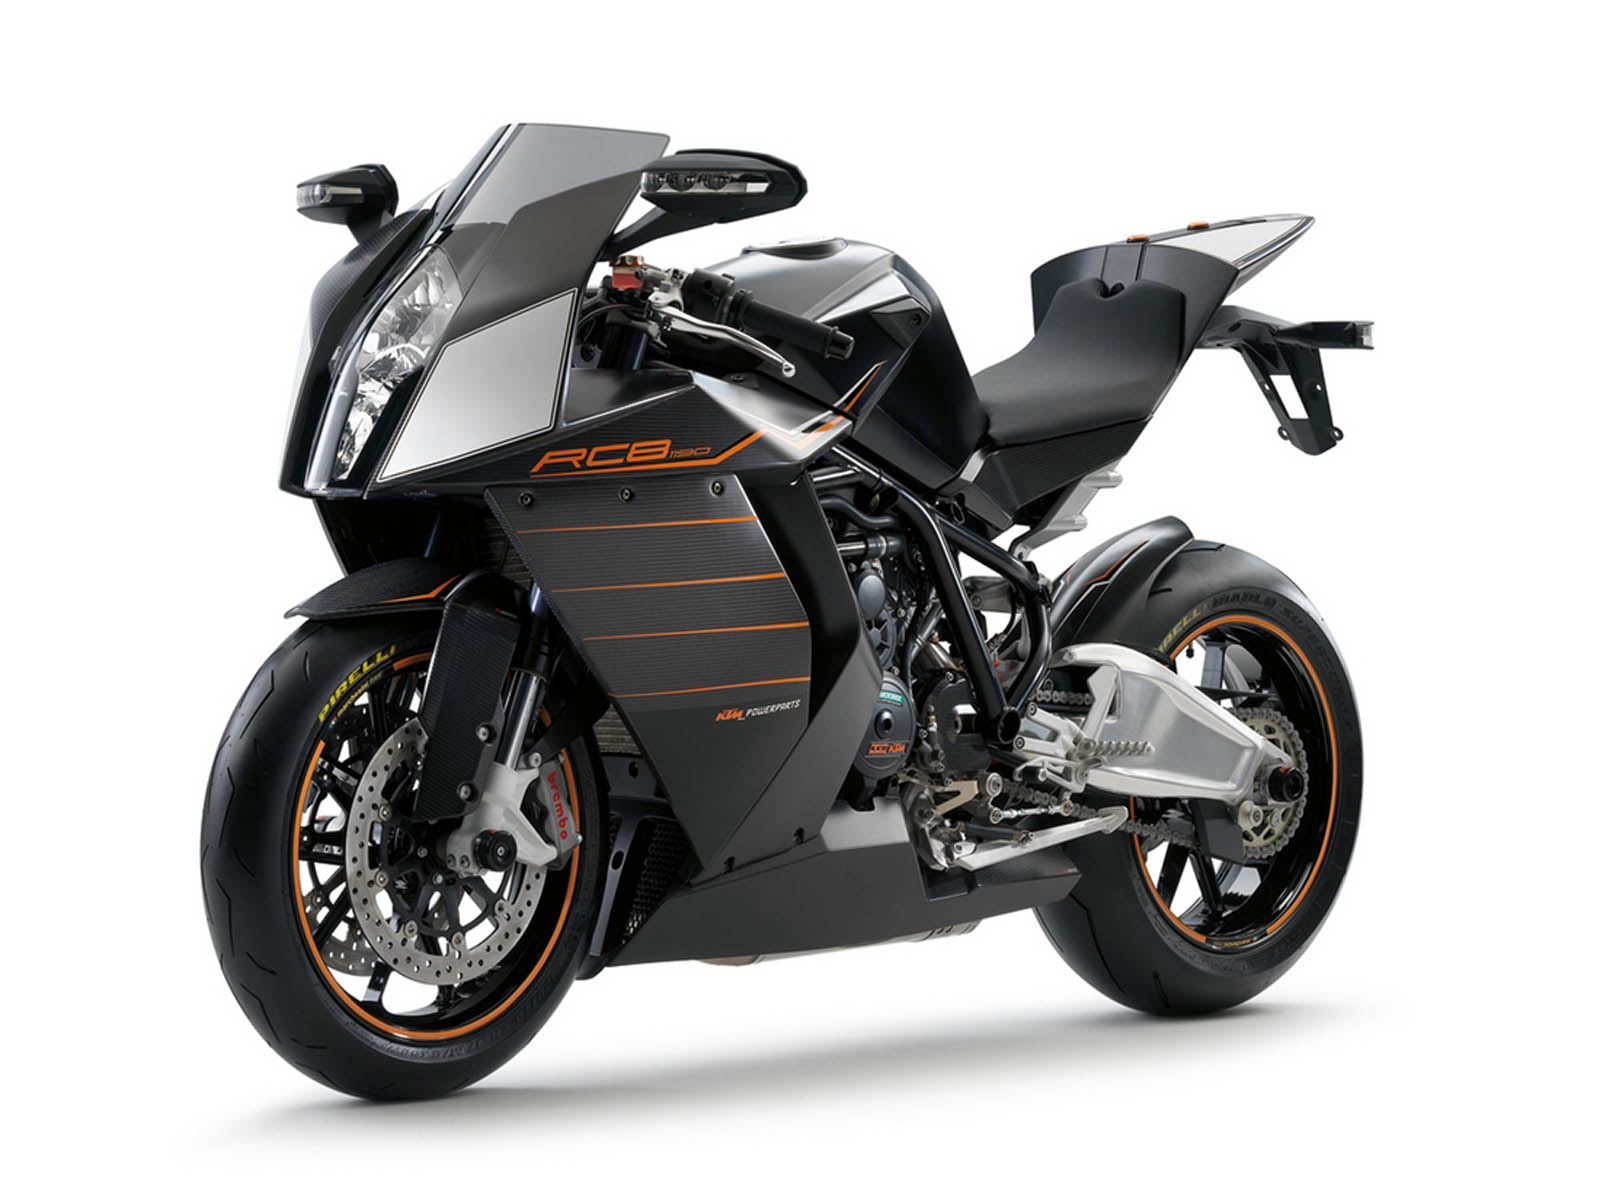 Bike Desktop Wallpapers KTM RC8 1190 Bike Desktop Backgrounds KTM 1600x1200